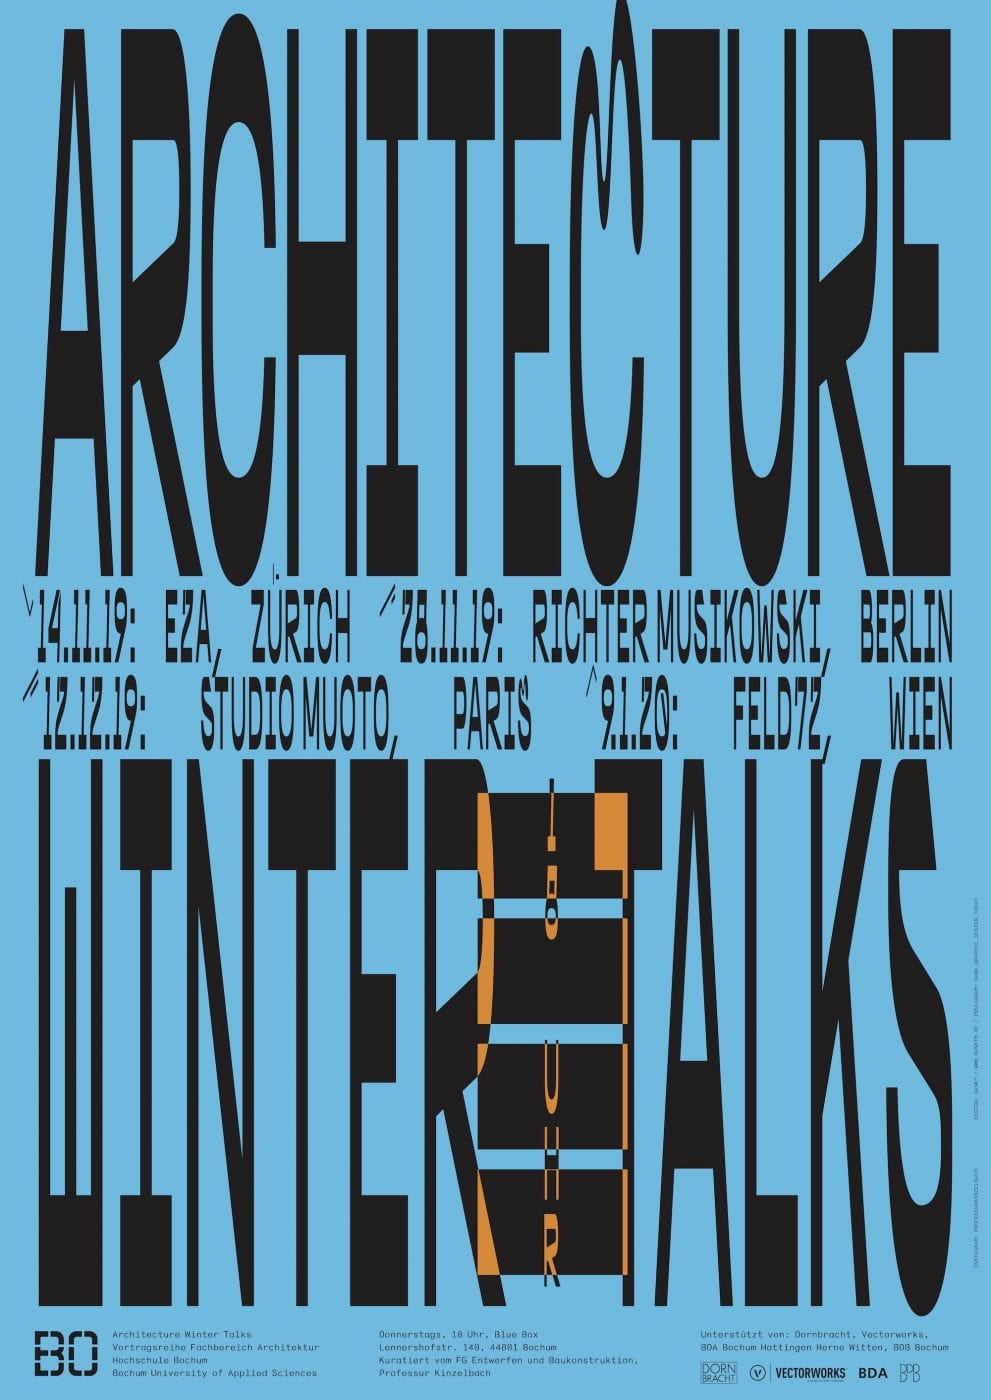 Architecture Winter Talks 2019/20: Vortragsreihe des Fachbereichs Architektur an der Bochum University of Applied Sciences (Grafik: Hochschule Bochum / FB Architektur)